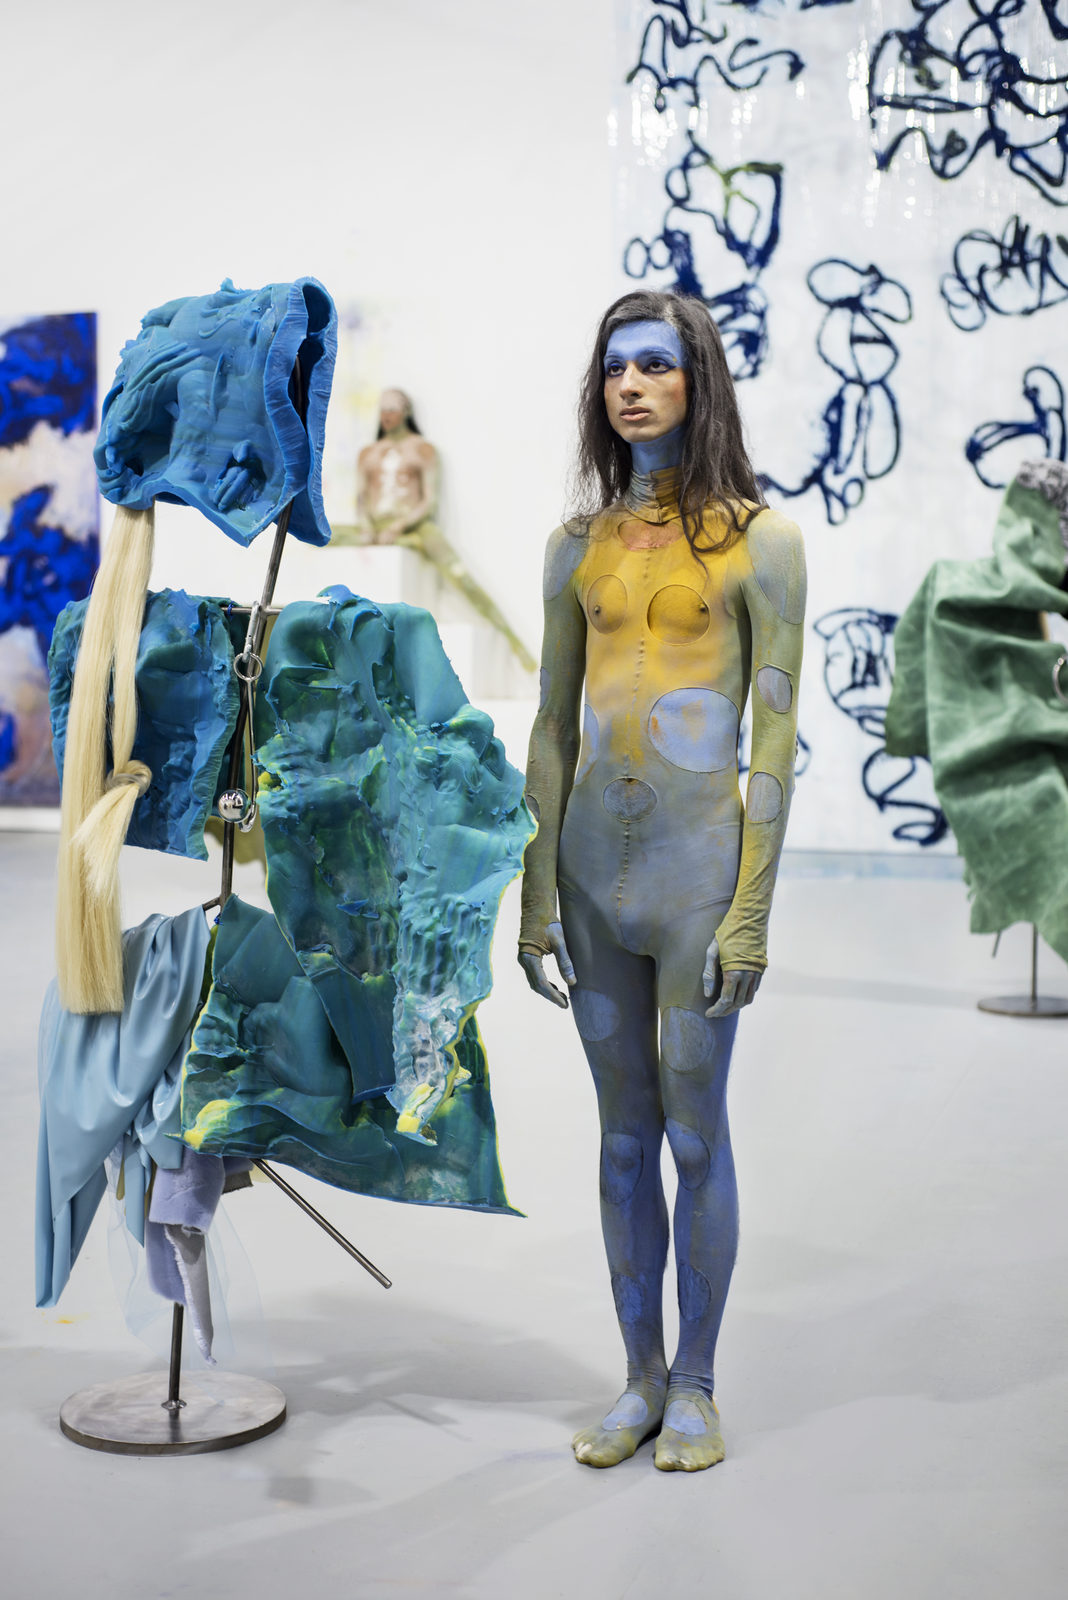 Donna Huanca - Scar Cymbals - performance 07.10.16 - Image Thierry Bal8